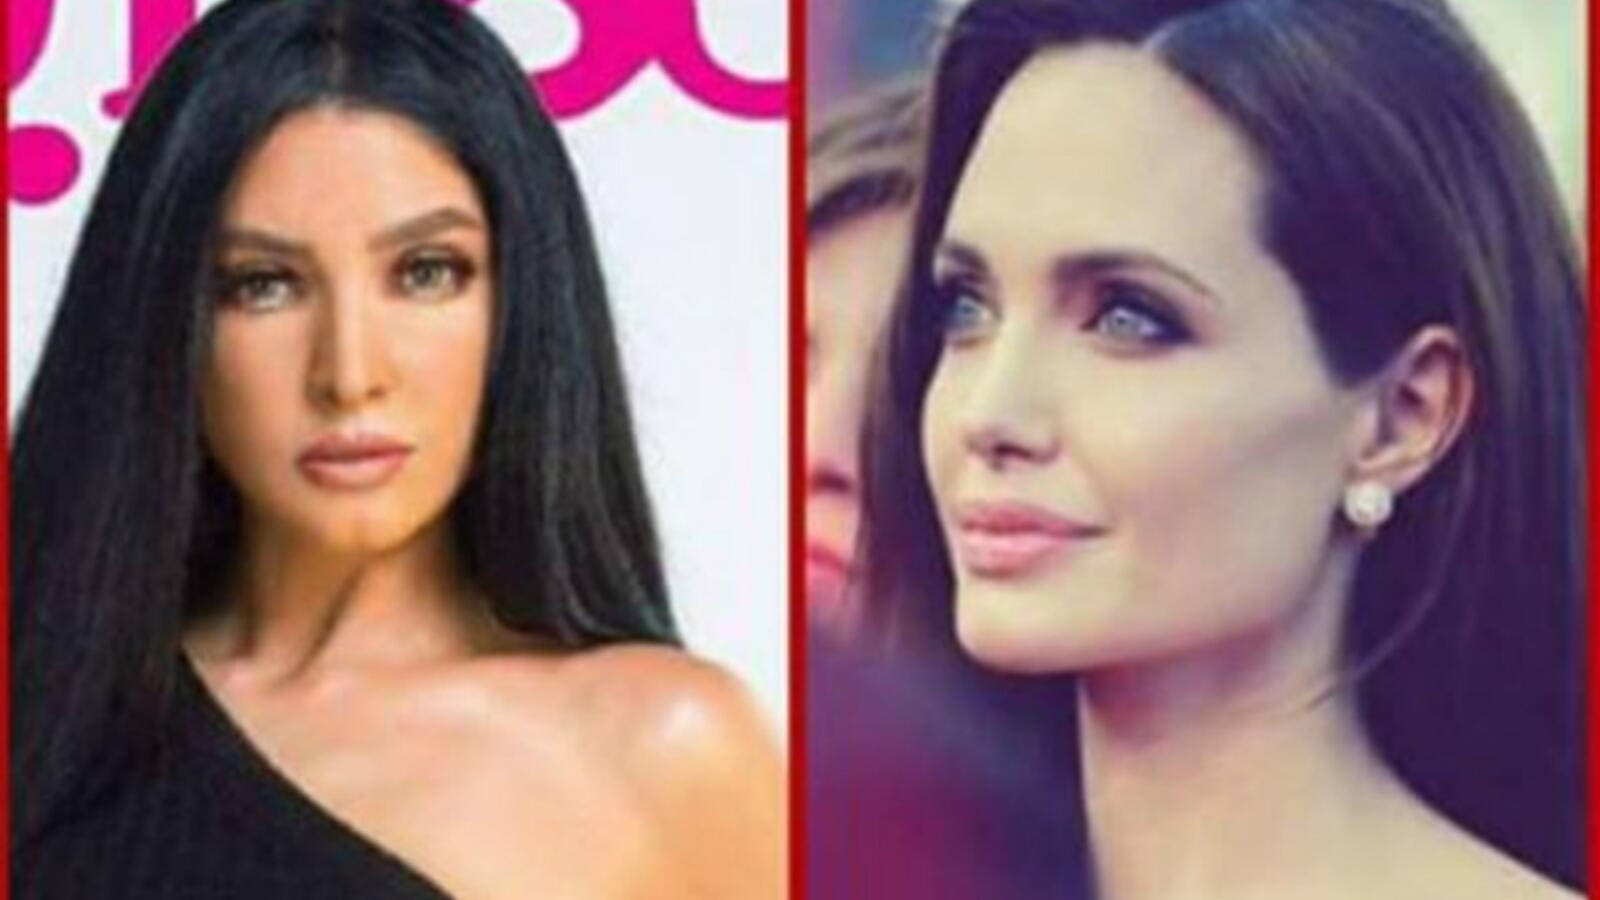 Fans hurled actress Rogena with comments after she posted a picture collage of herself and Jolie, comparing her latest appearance to the Hollywood actress. (Source: Rogenaofficial - Instagram)